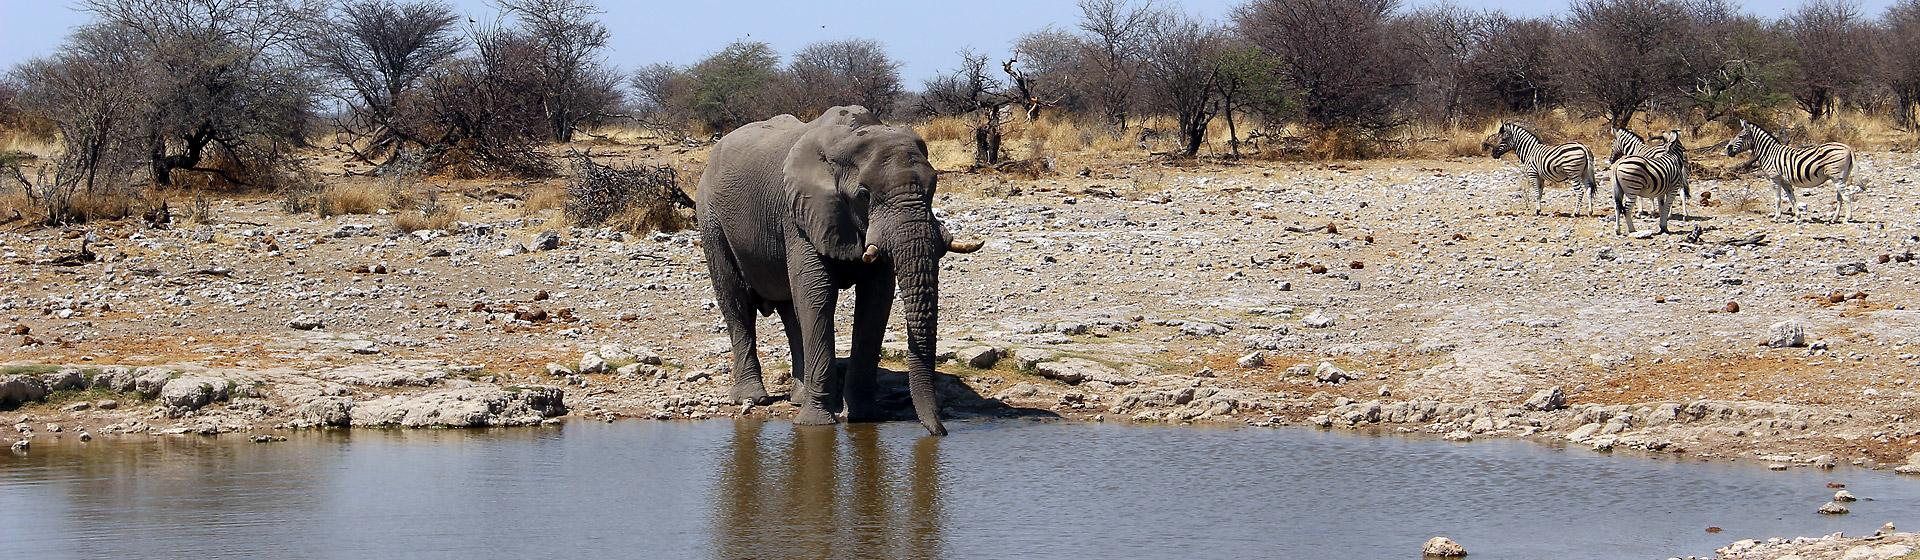 Elephant at water hole, Namibia